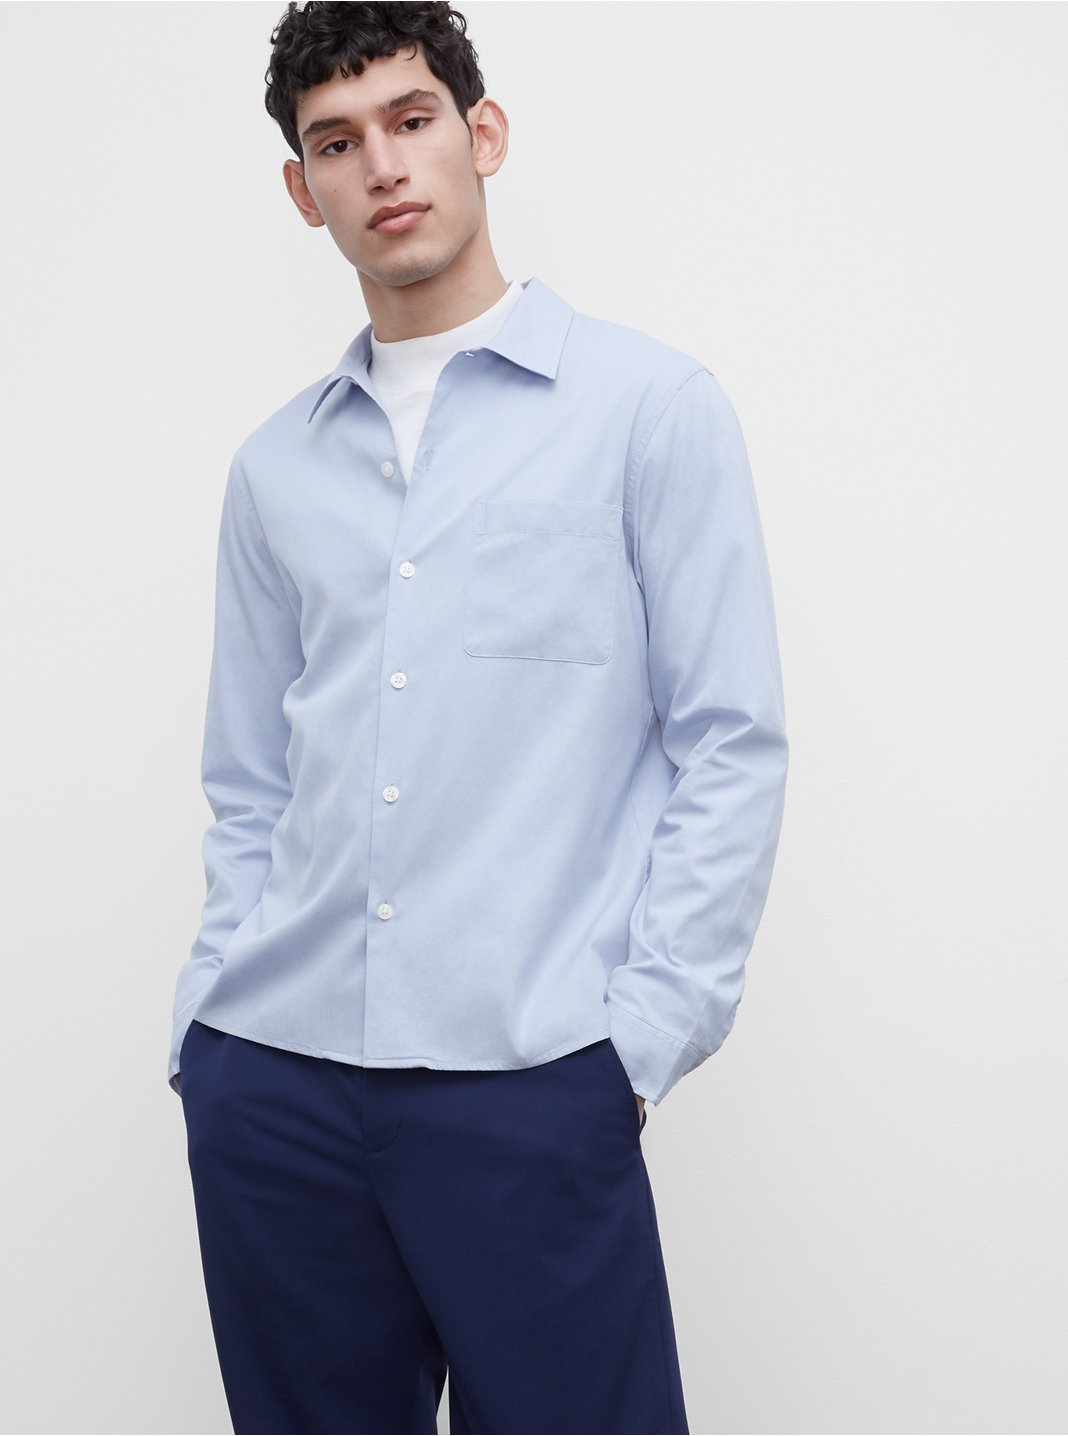 Long Sleeve Standard Shirt